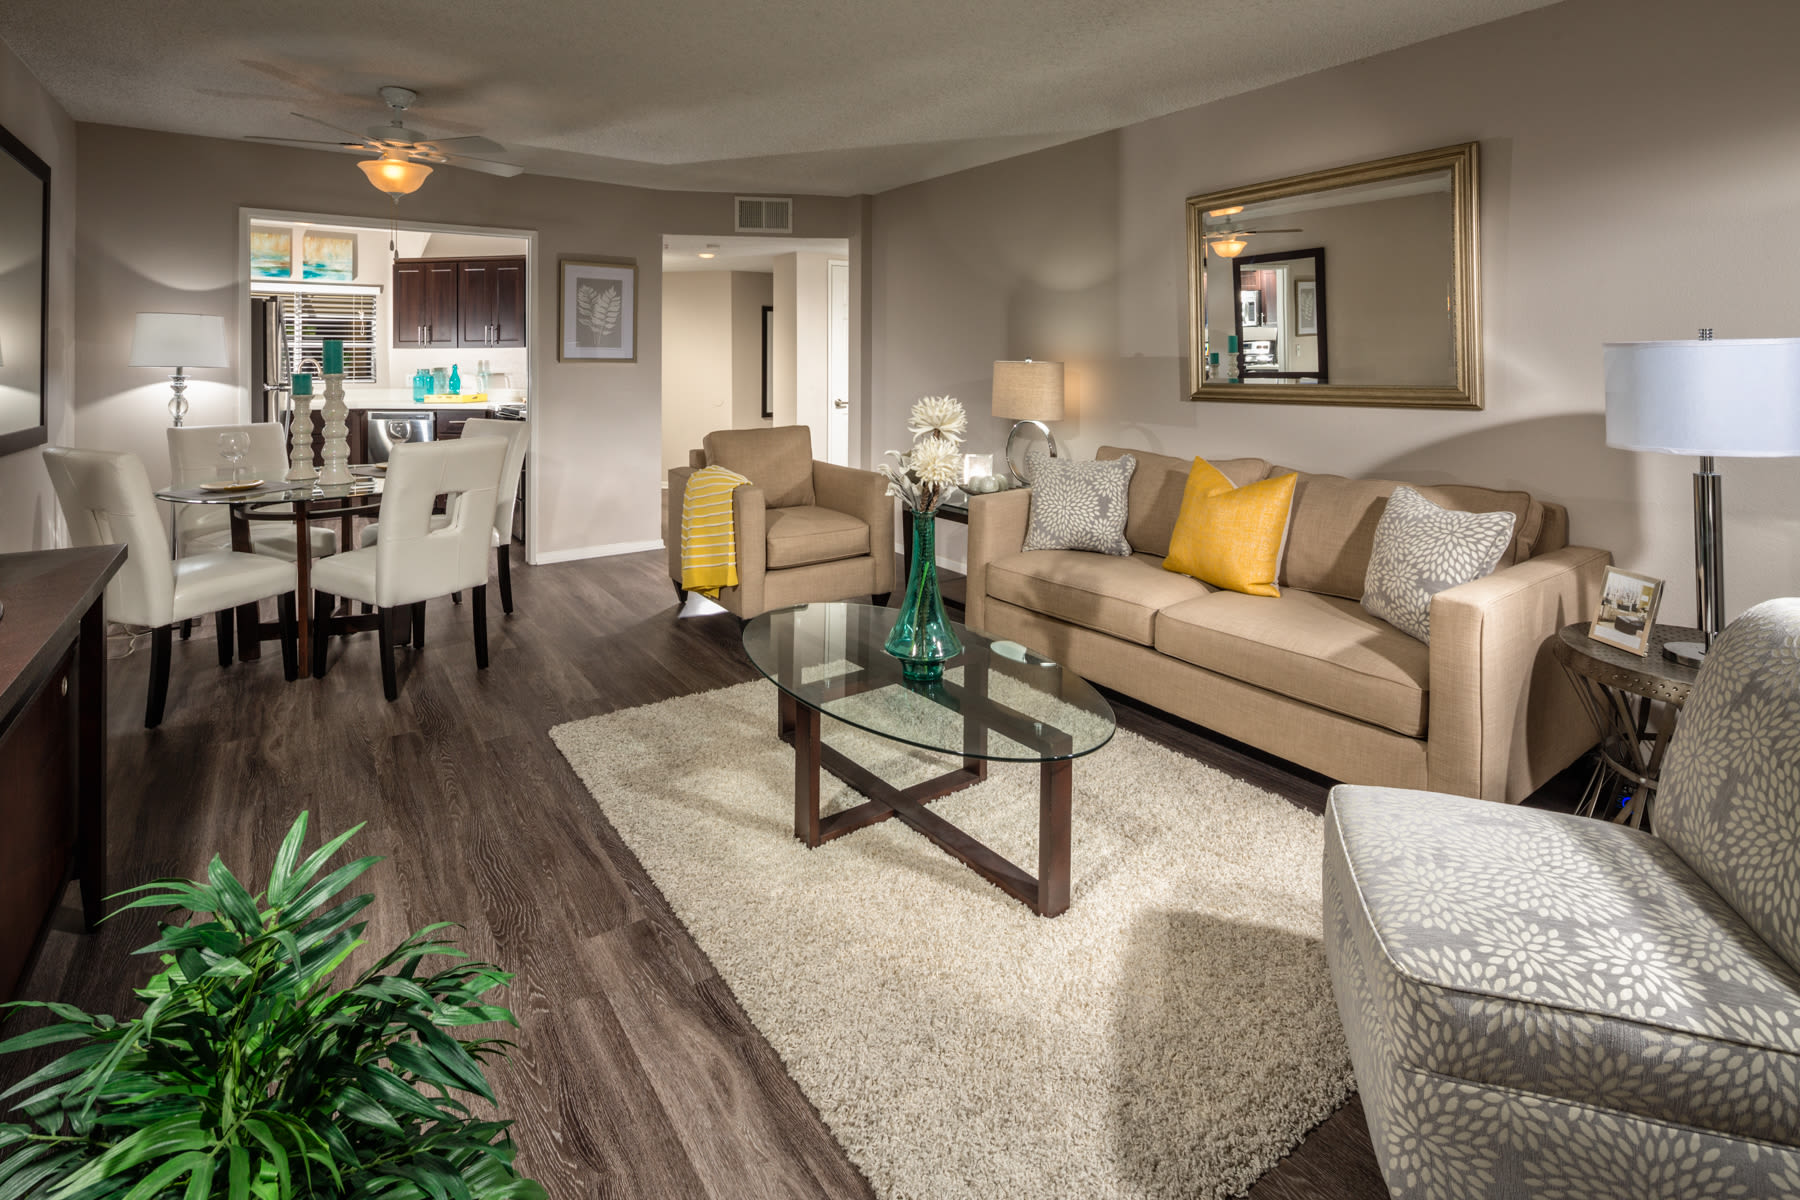 Apartment features at Sierra Heights Apartments